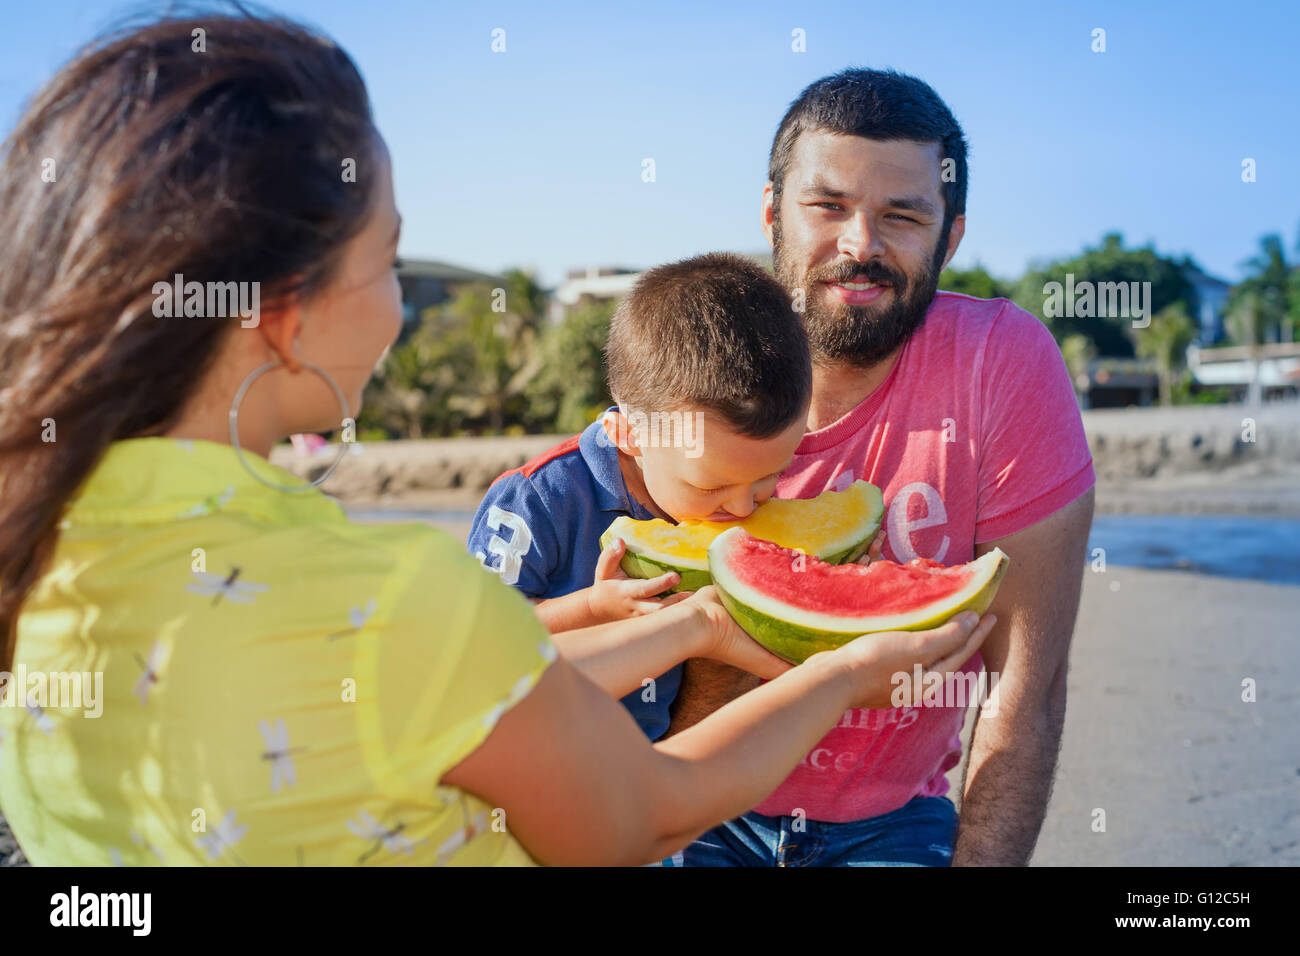 Happy family funny picnic on morning sea beach - mother feed baby boy, adult man. Father, son eat fruits with fun. Stock Photo